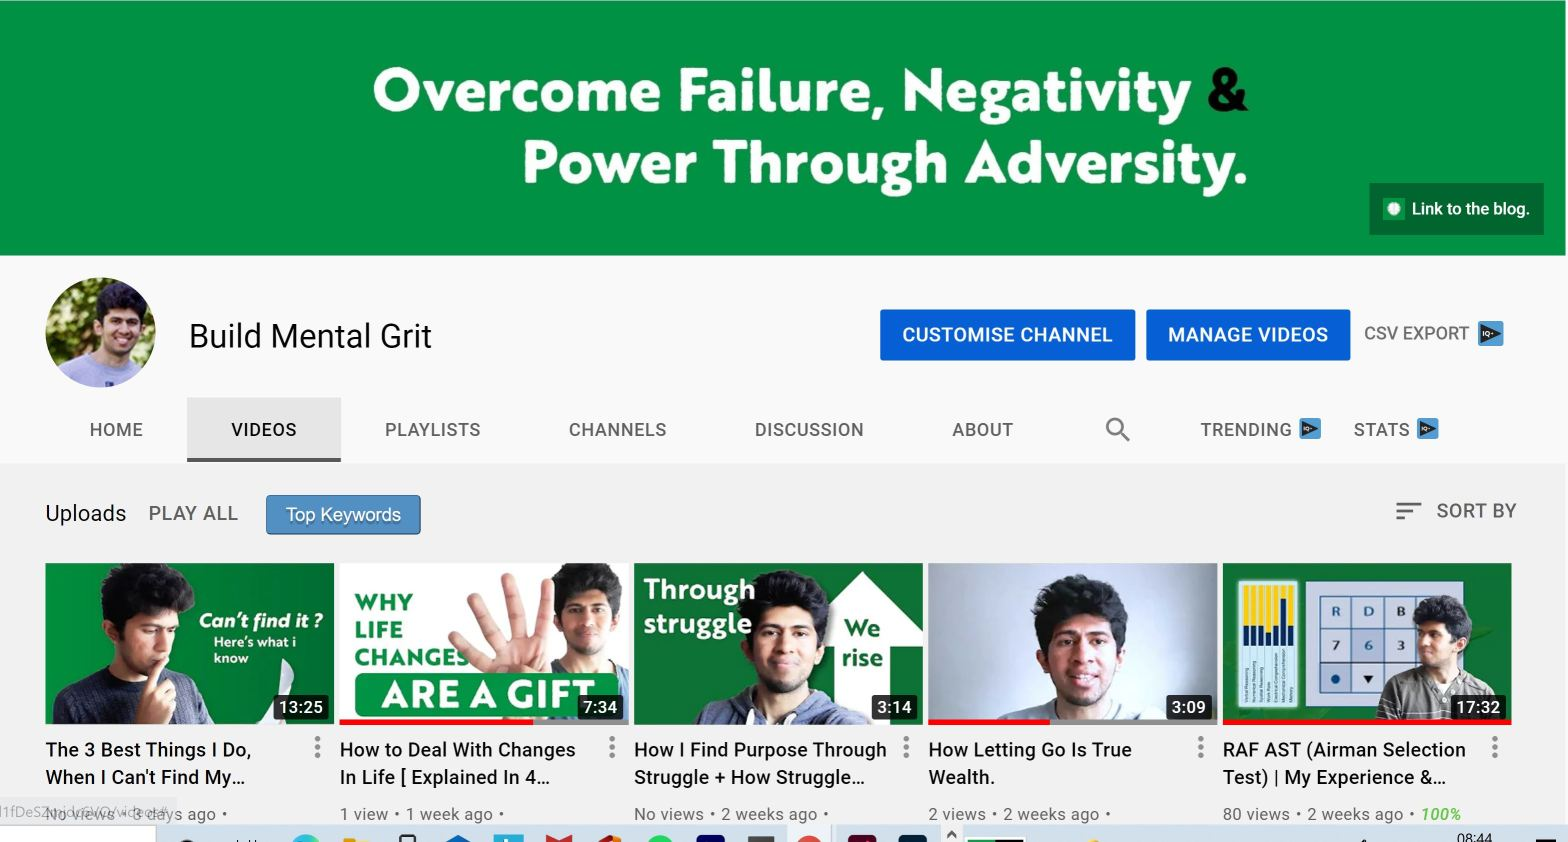 Video-library-image-of-youtube-channel-with-green-colour-scheme-and-video-content